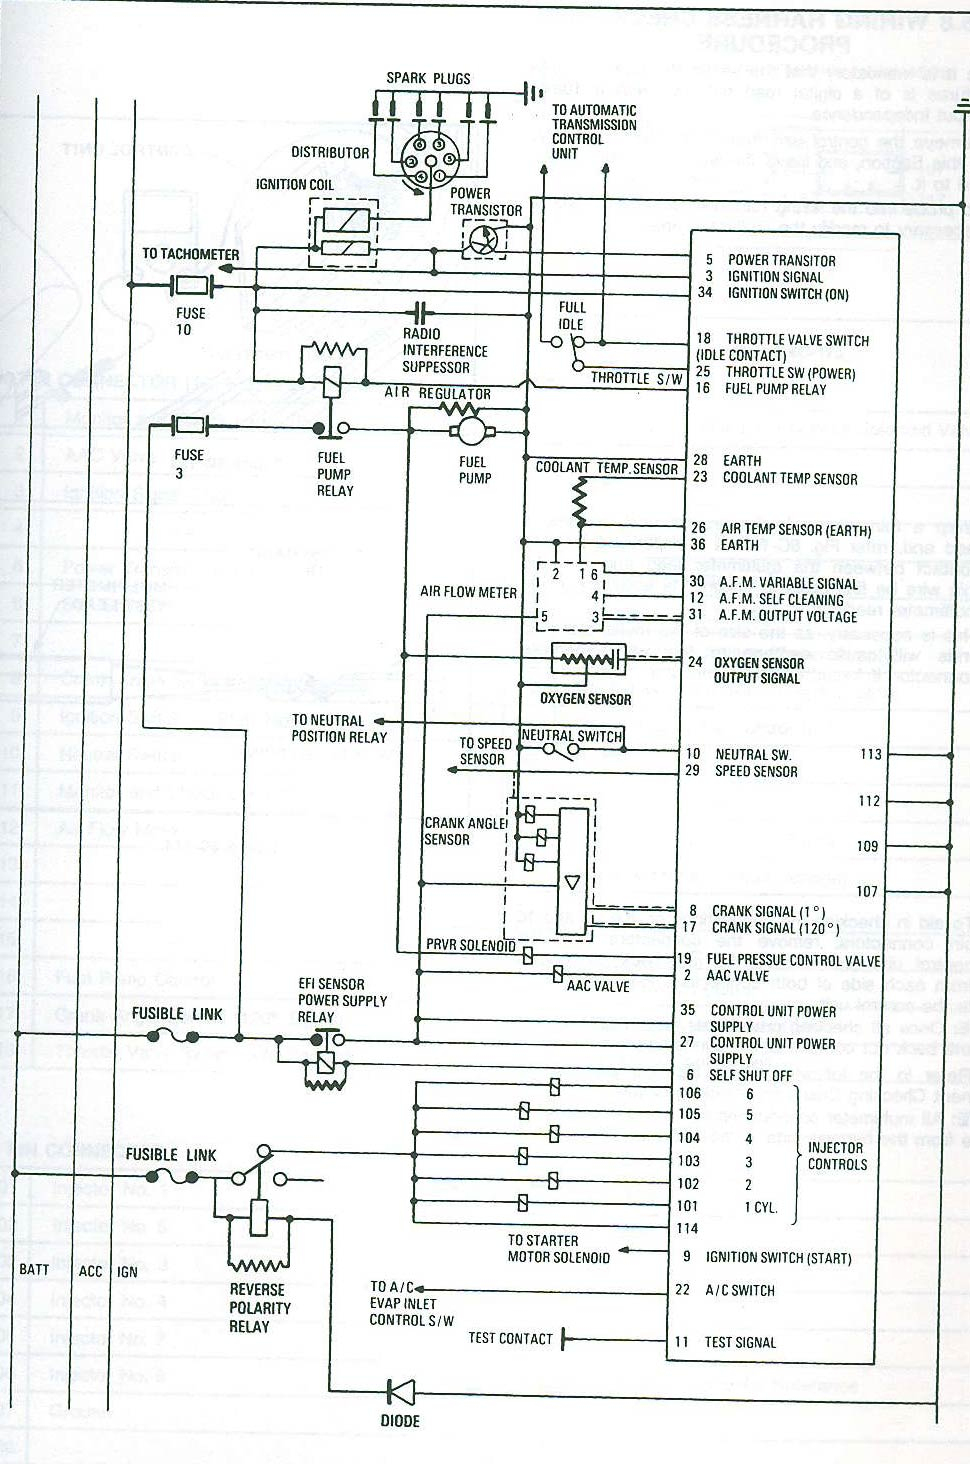 Wiring Diagram Likewise Vz Modore As Well - Wiring Diagram Name - Vz Commodore Trailer Wiring Diagram